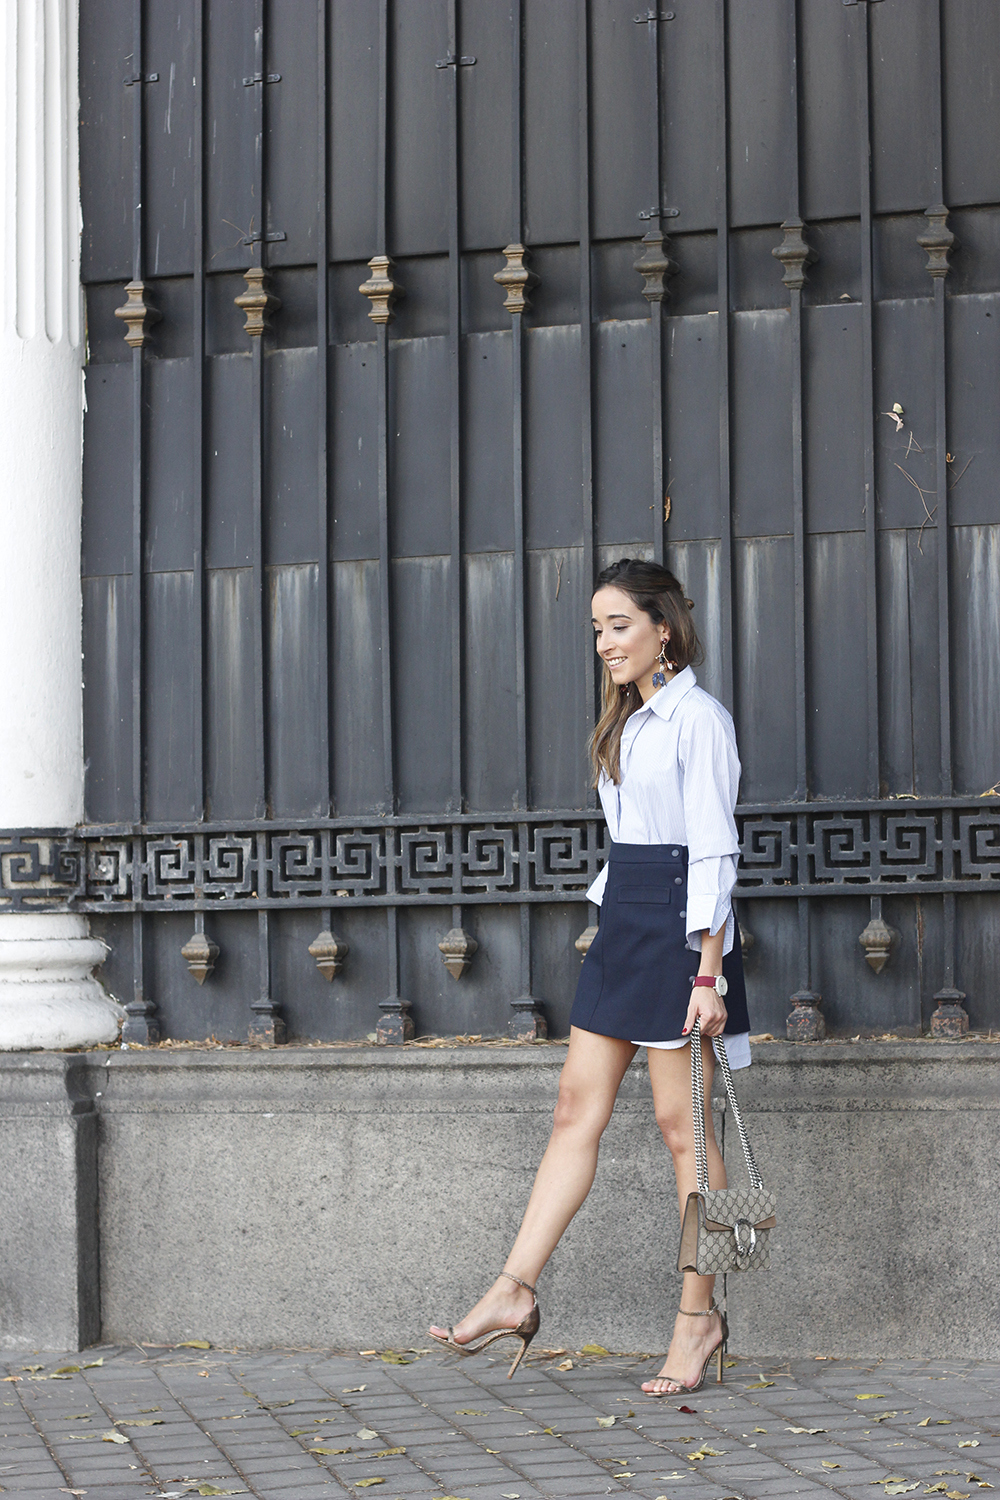 striped shirt blue navy skirt gucci bag heels outfit fashion style04